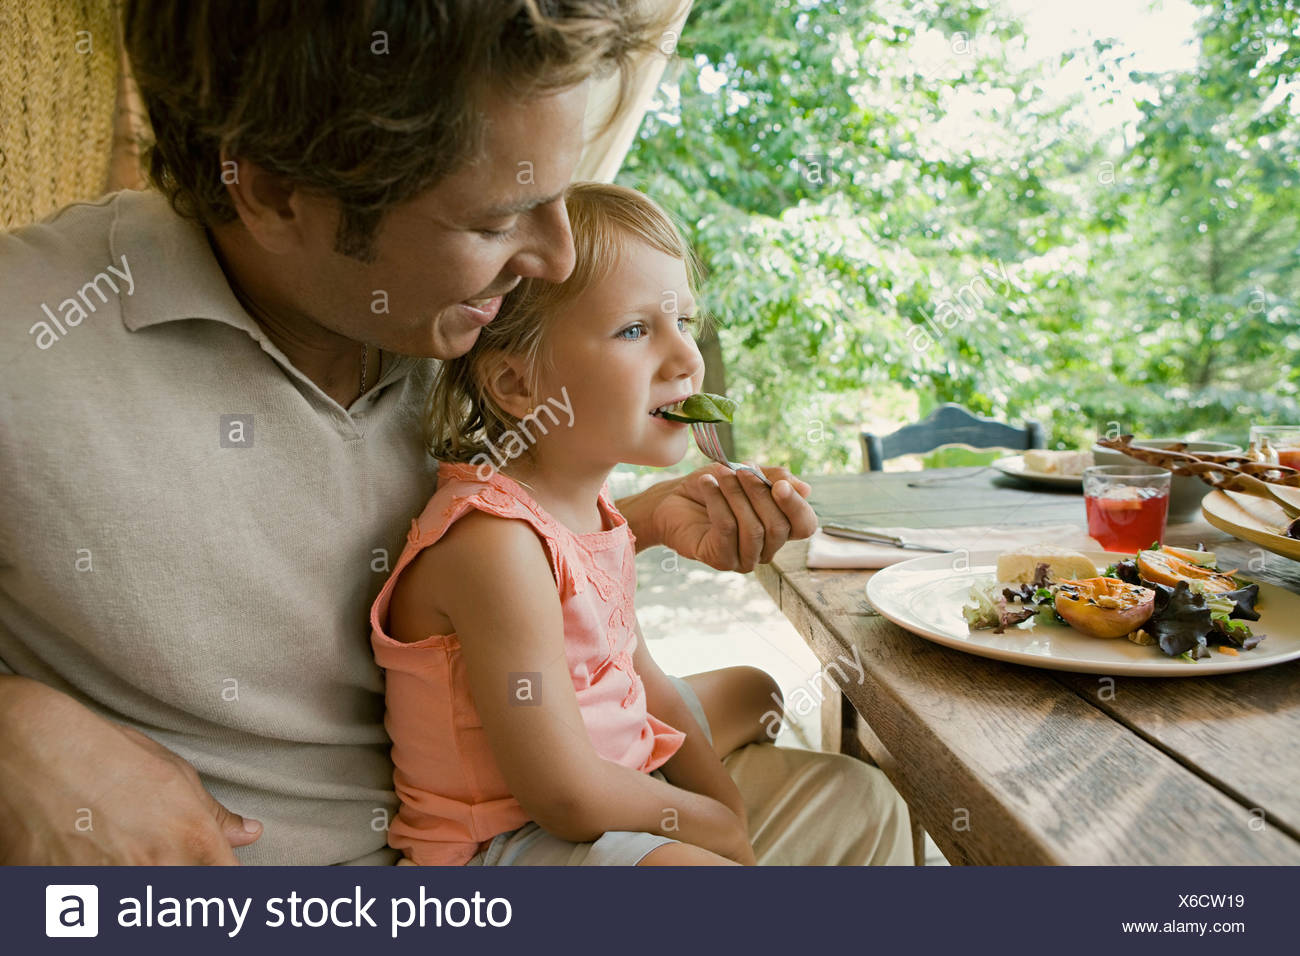 Father feeding daughter at table - Stock Image